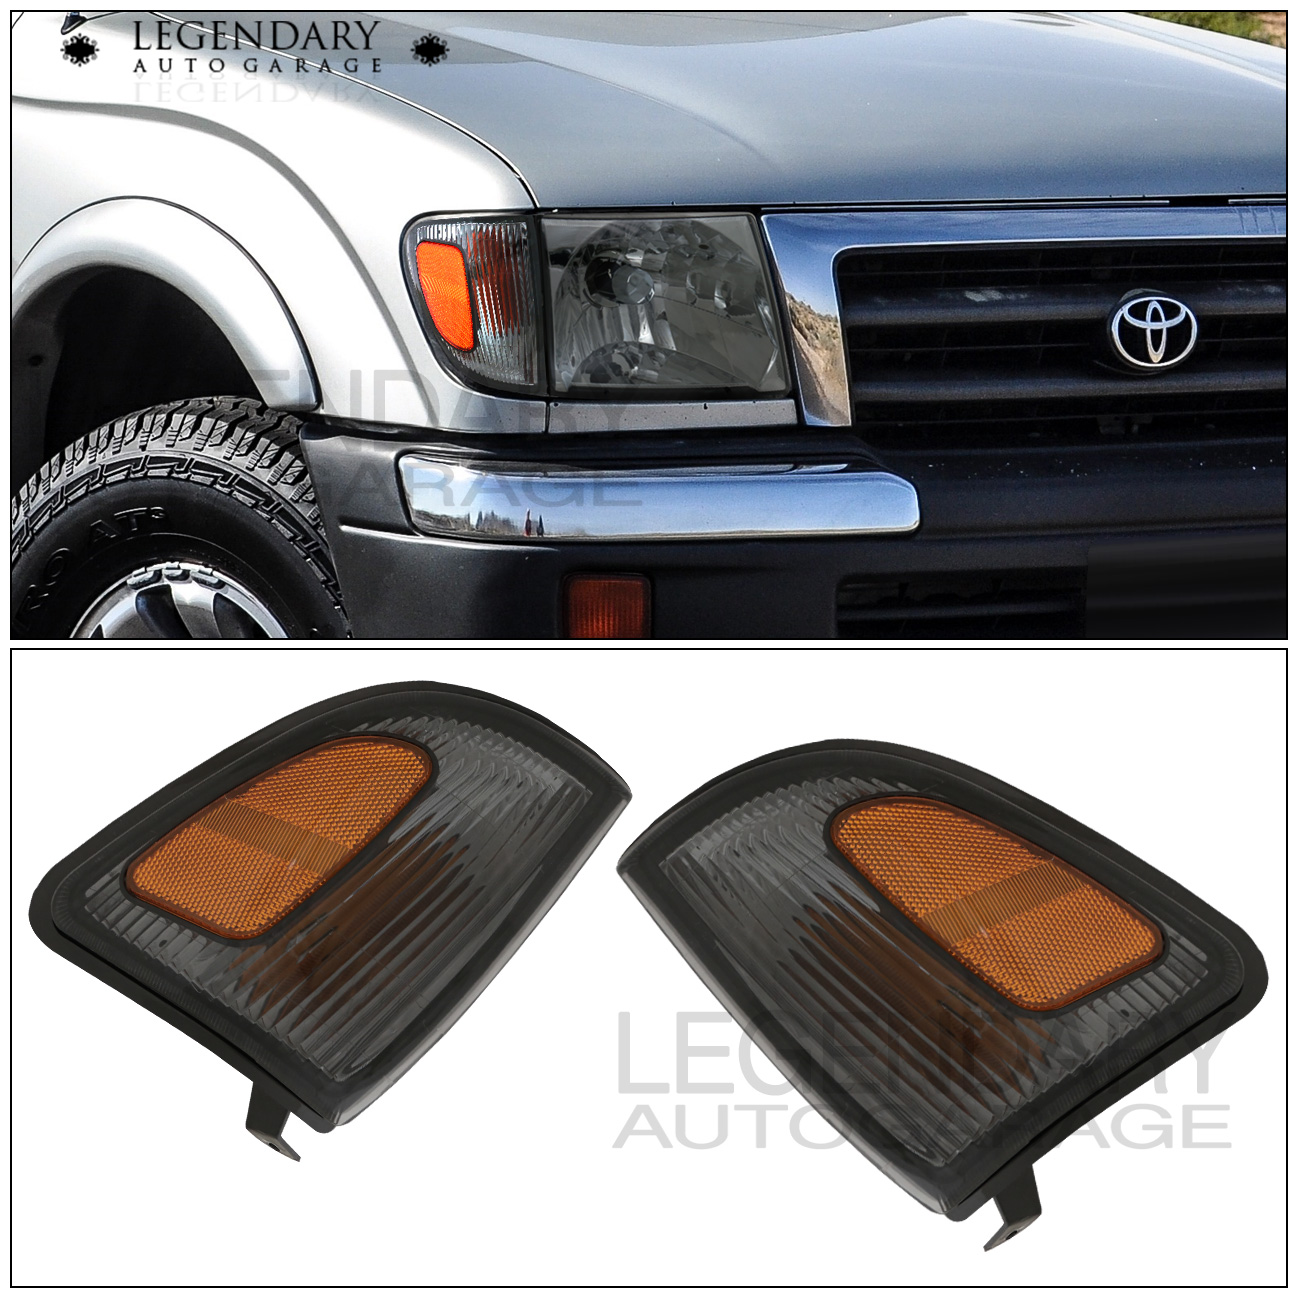 Parking Garage Light Signals: For 1998-2000 Toyota Tacoma 4WD Smoked Lenses Amber Signal